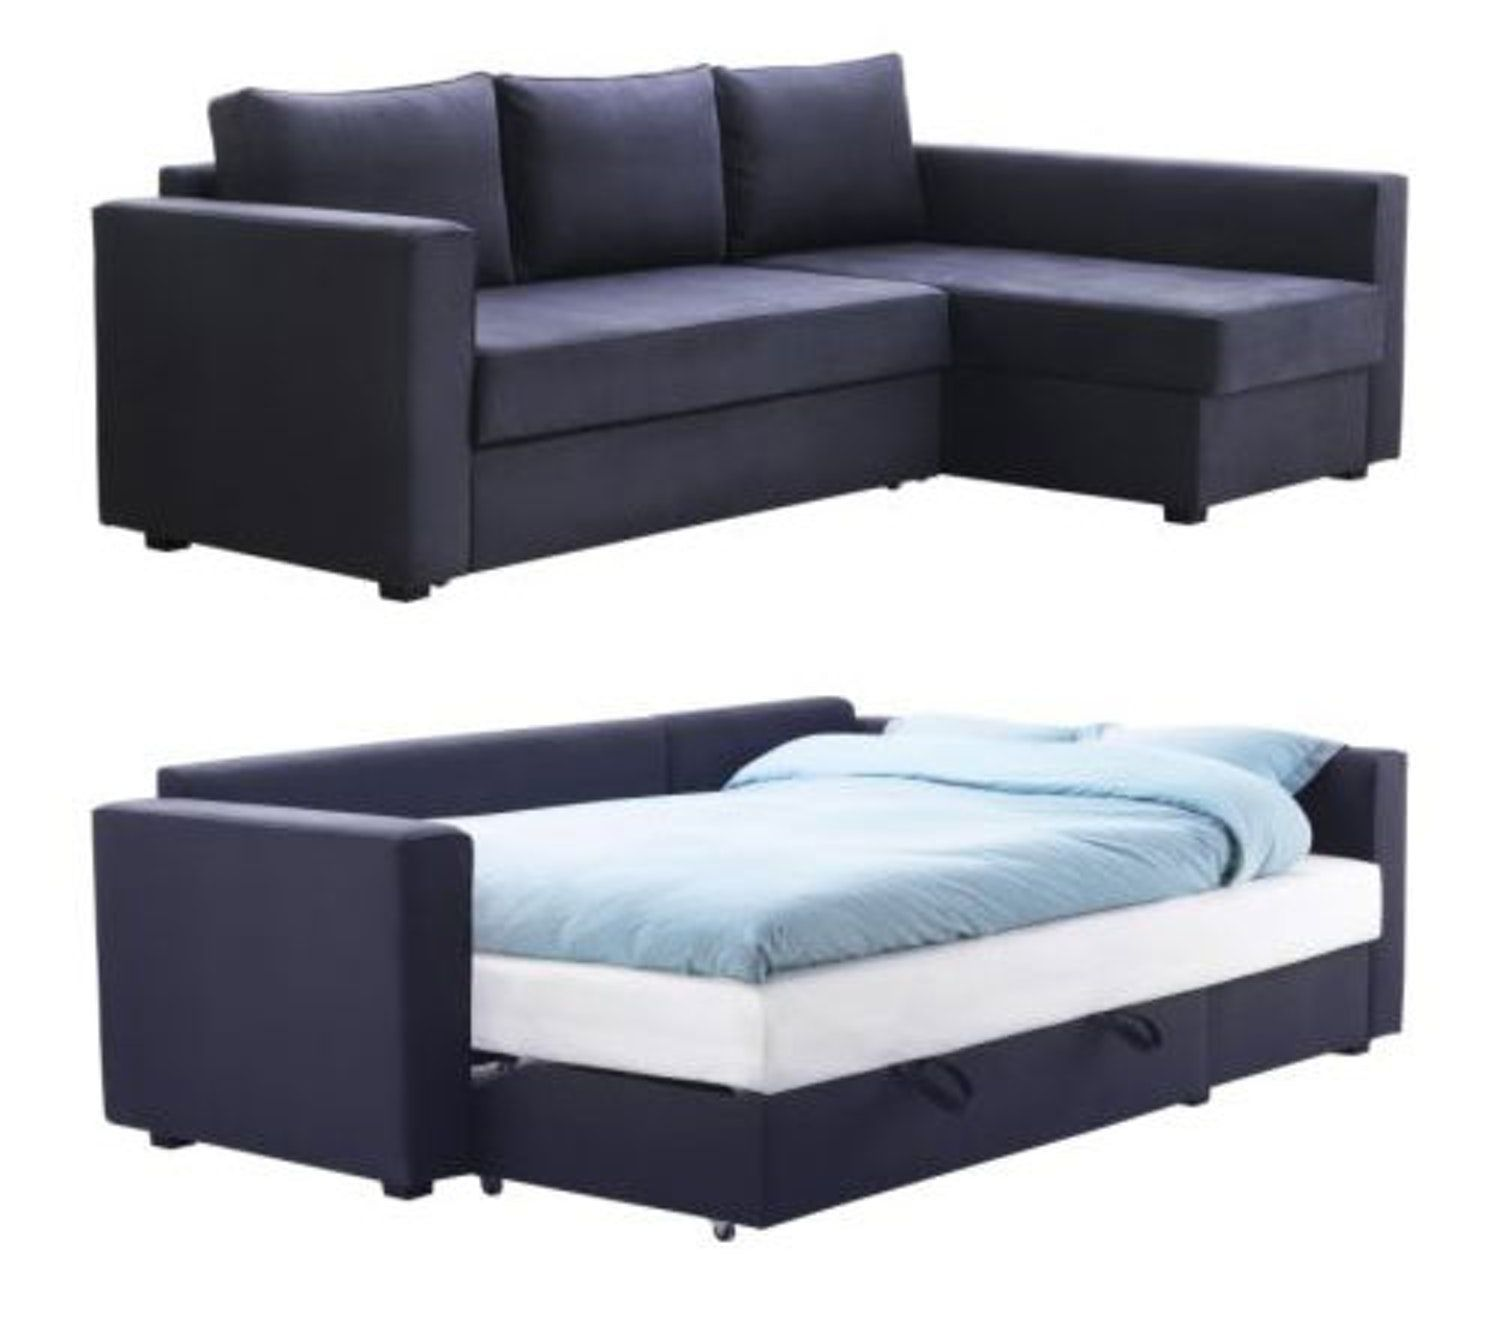 Manstad Sofa Bed With Storage From Ikea With Images Sofa Bed With Storage Pull Out Sofa Bed Ikea Corner Sofa Bed